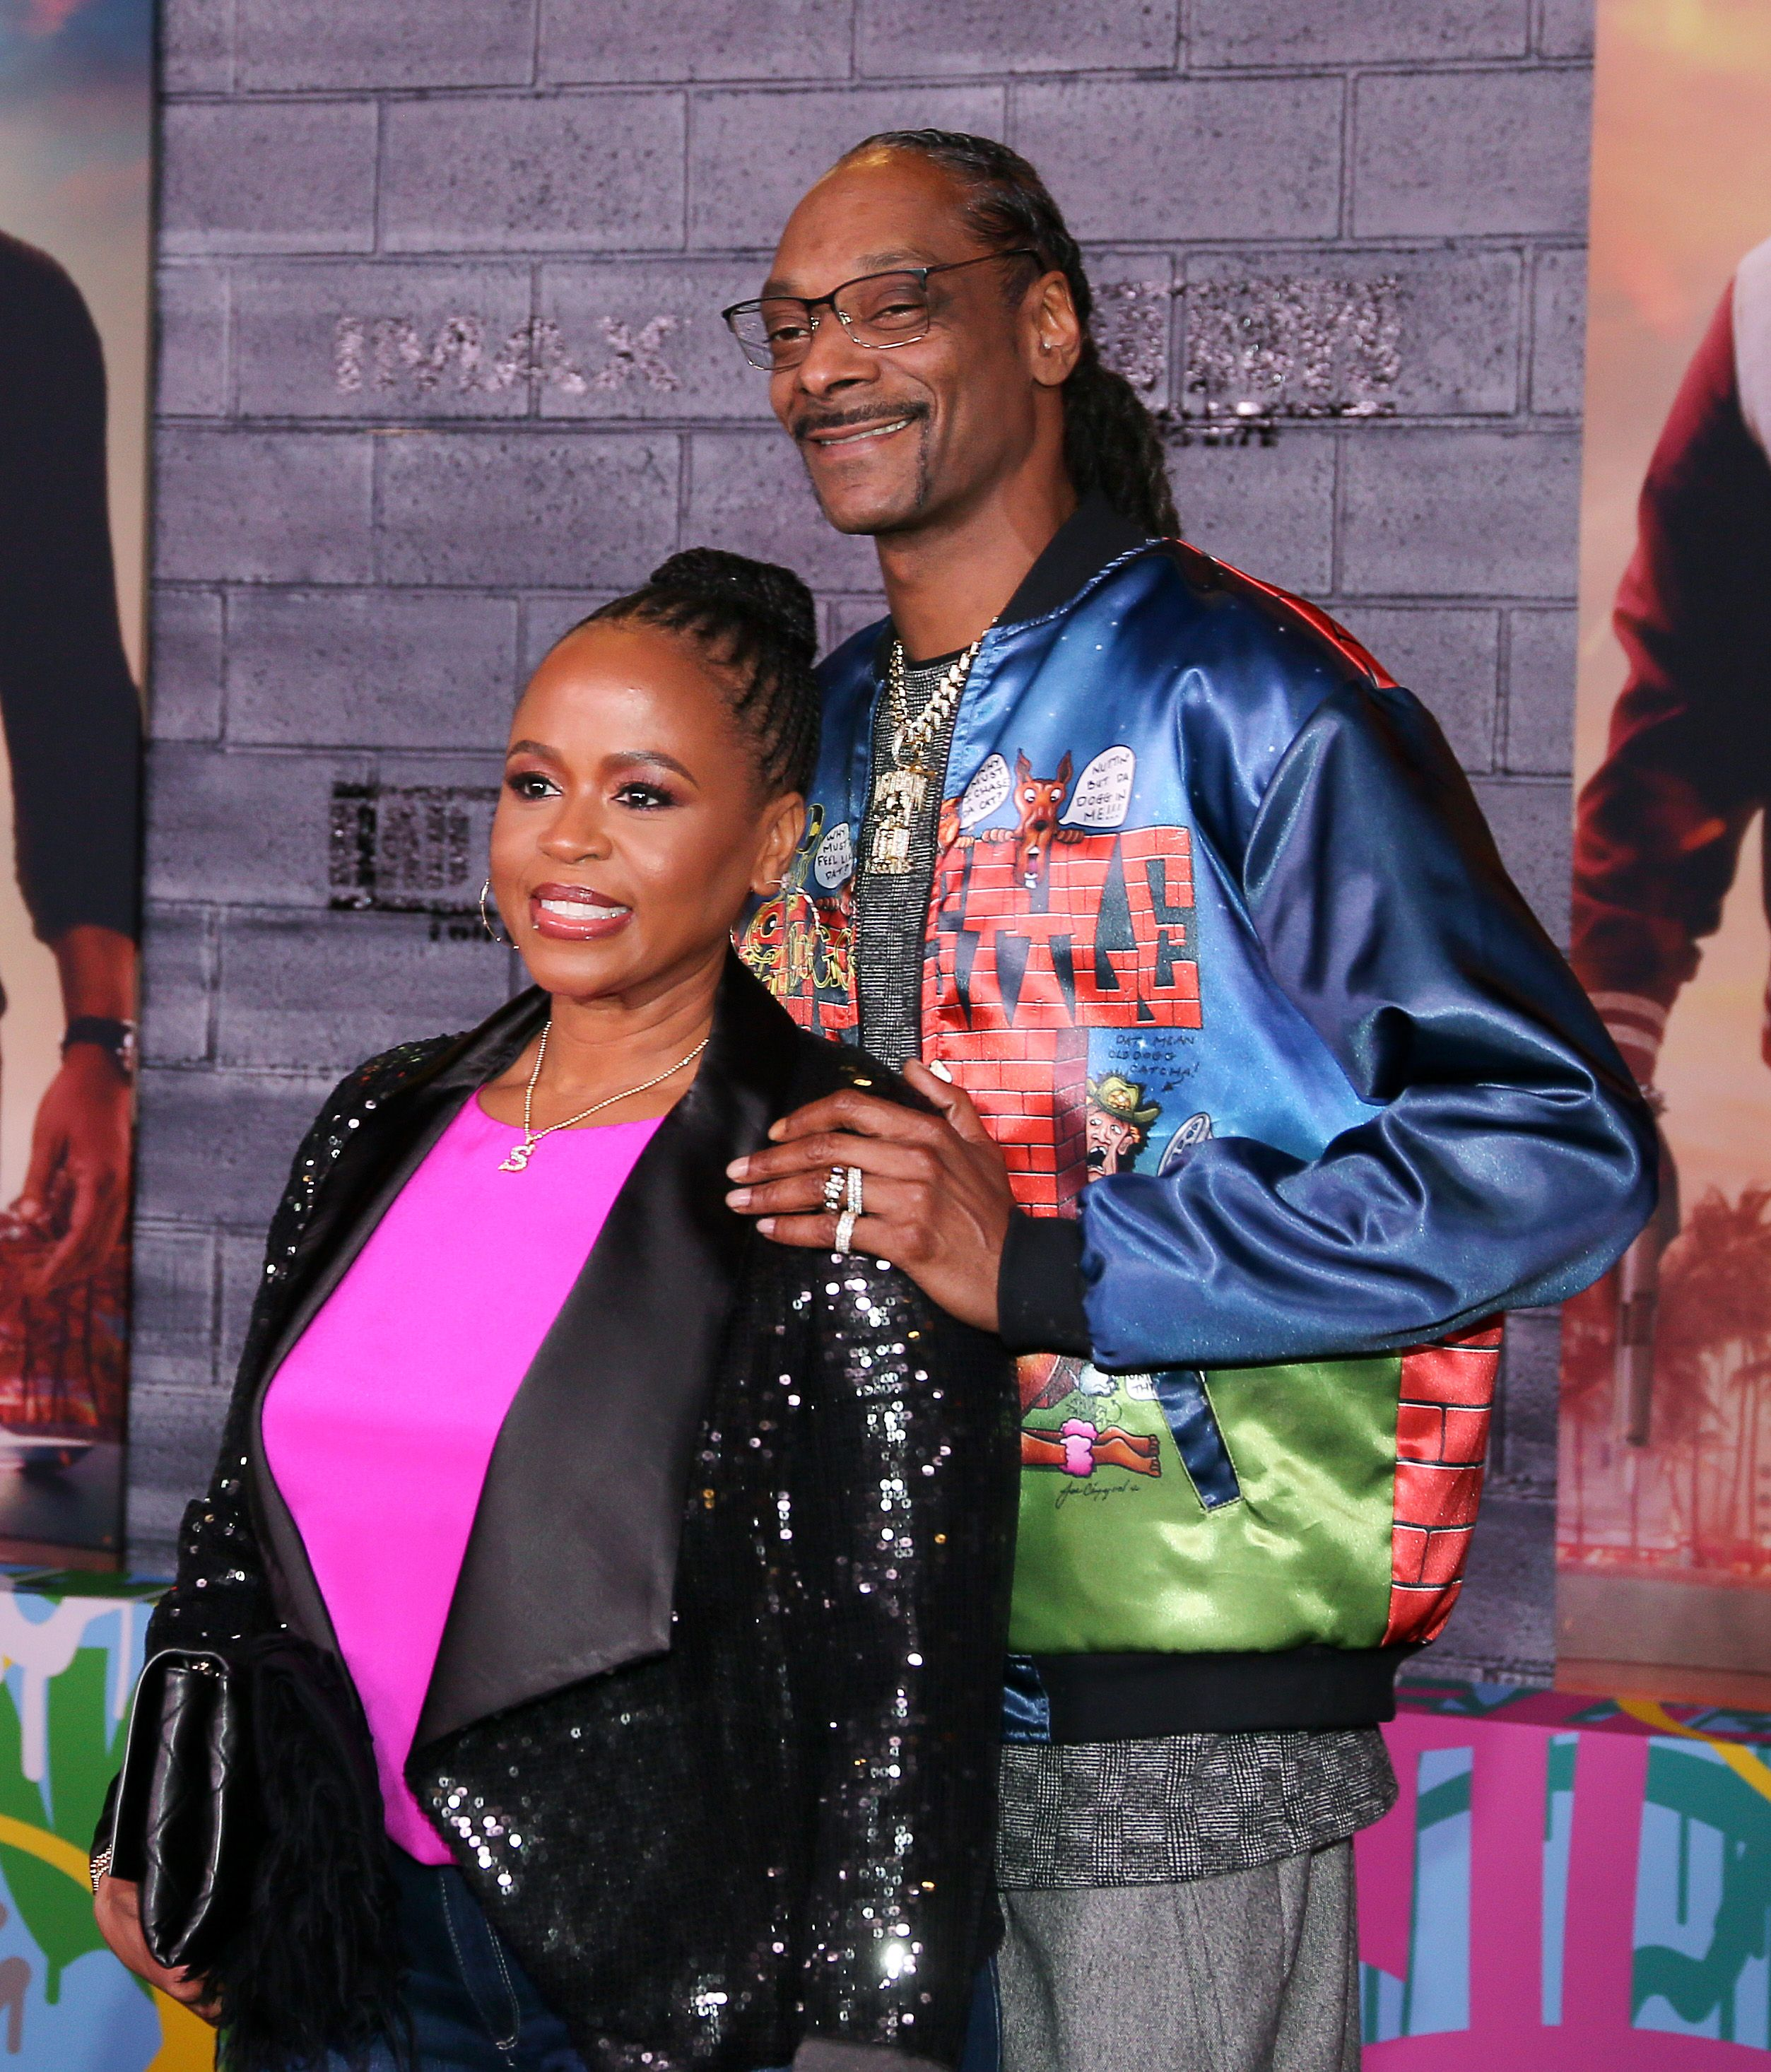 """Shante Taylor Broadus and Snoop Dogg at the world premiere of """"Bad Boys for Life"""" at TCL Chinese Theatre on January 14, 2020 